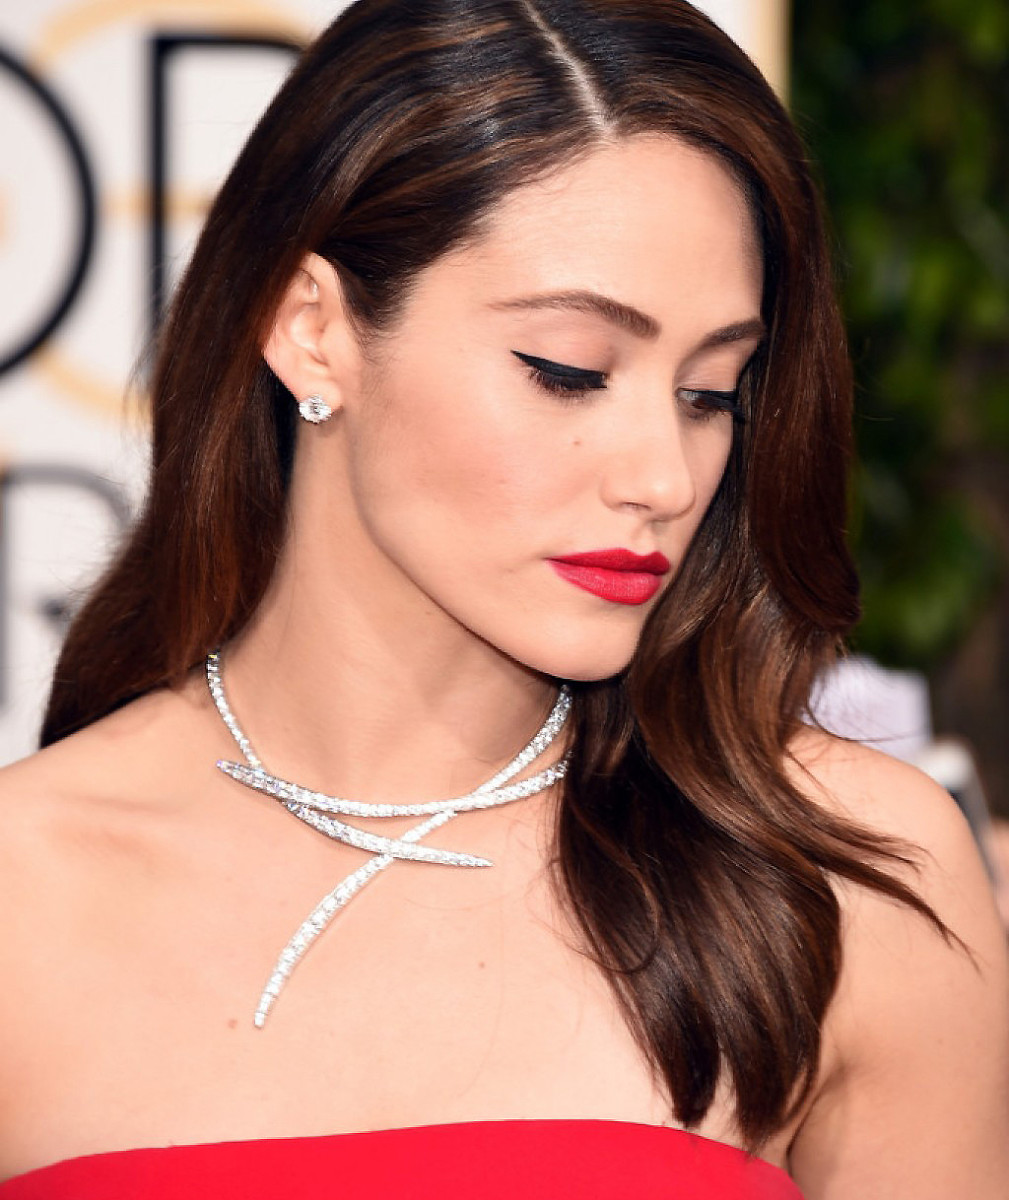 Emmy Rossum at the 2016 Golden Globes: makeup by Jo Baker.